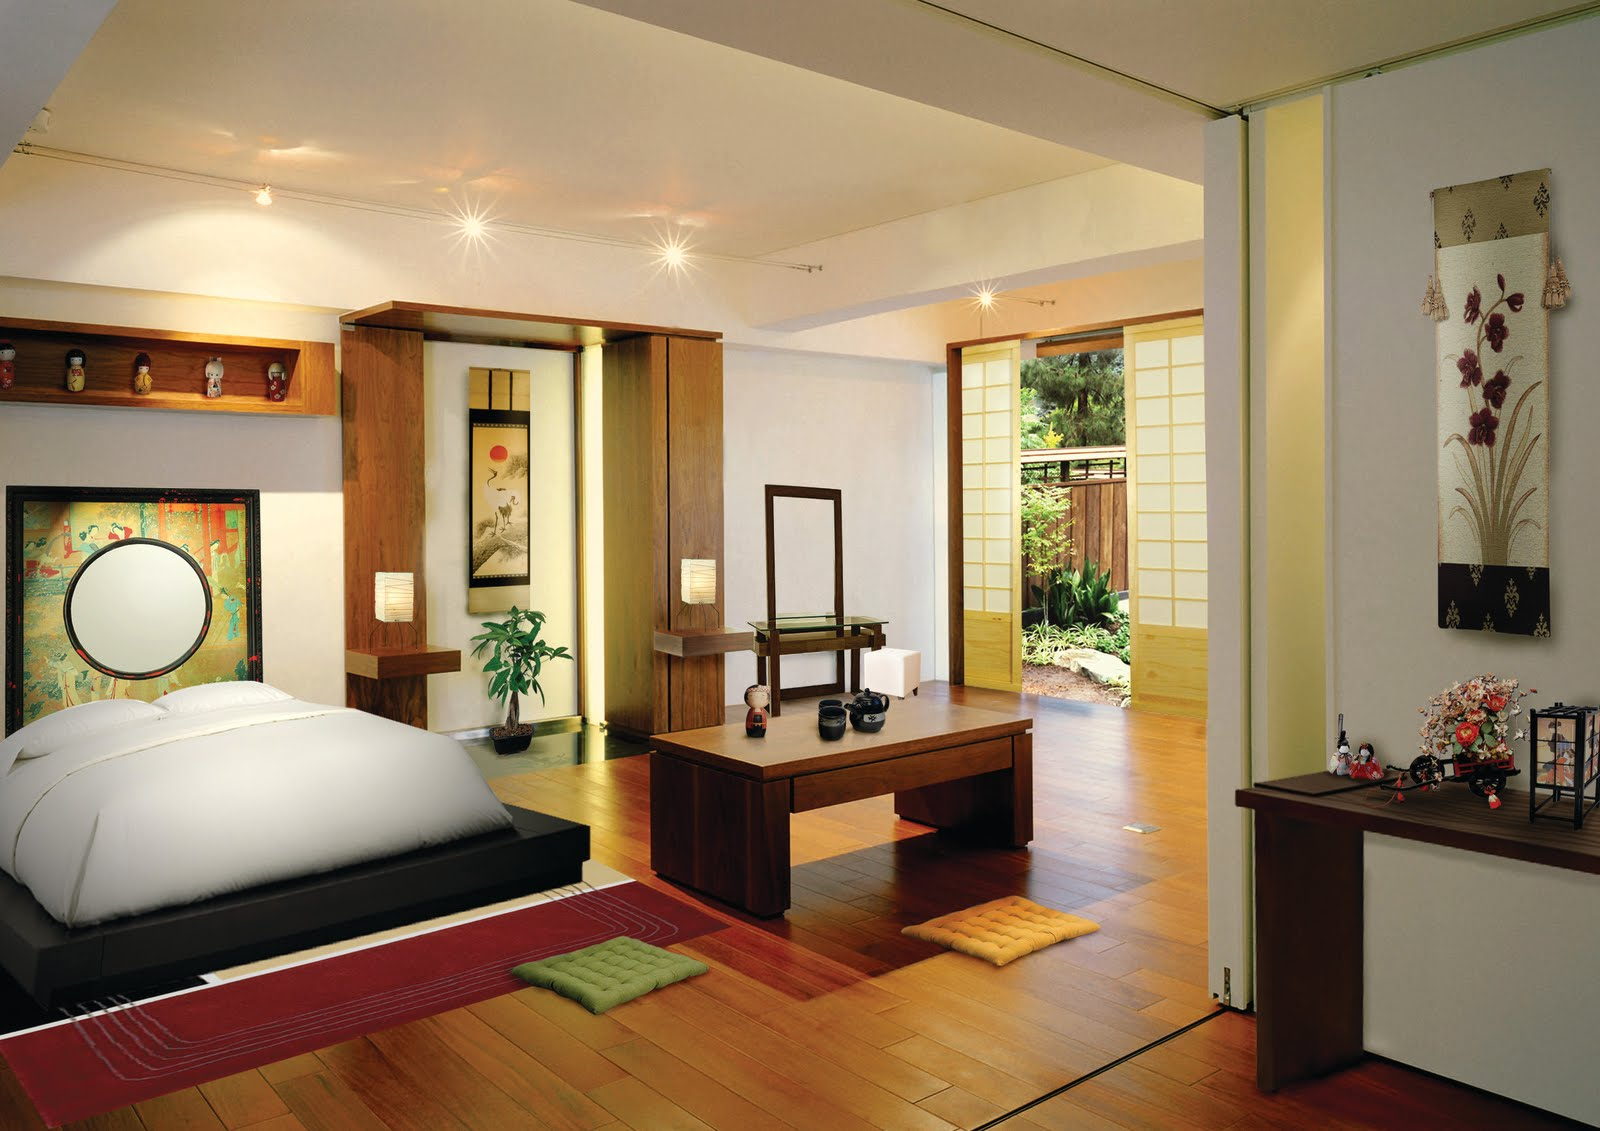 Melokumi japanese style bedroom design for New style bedroom design